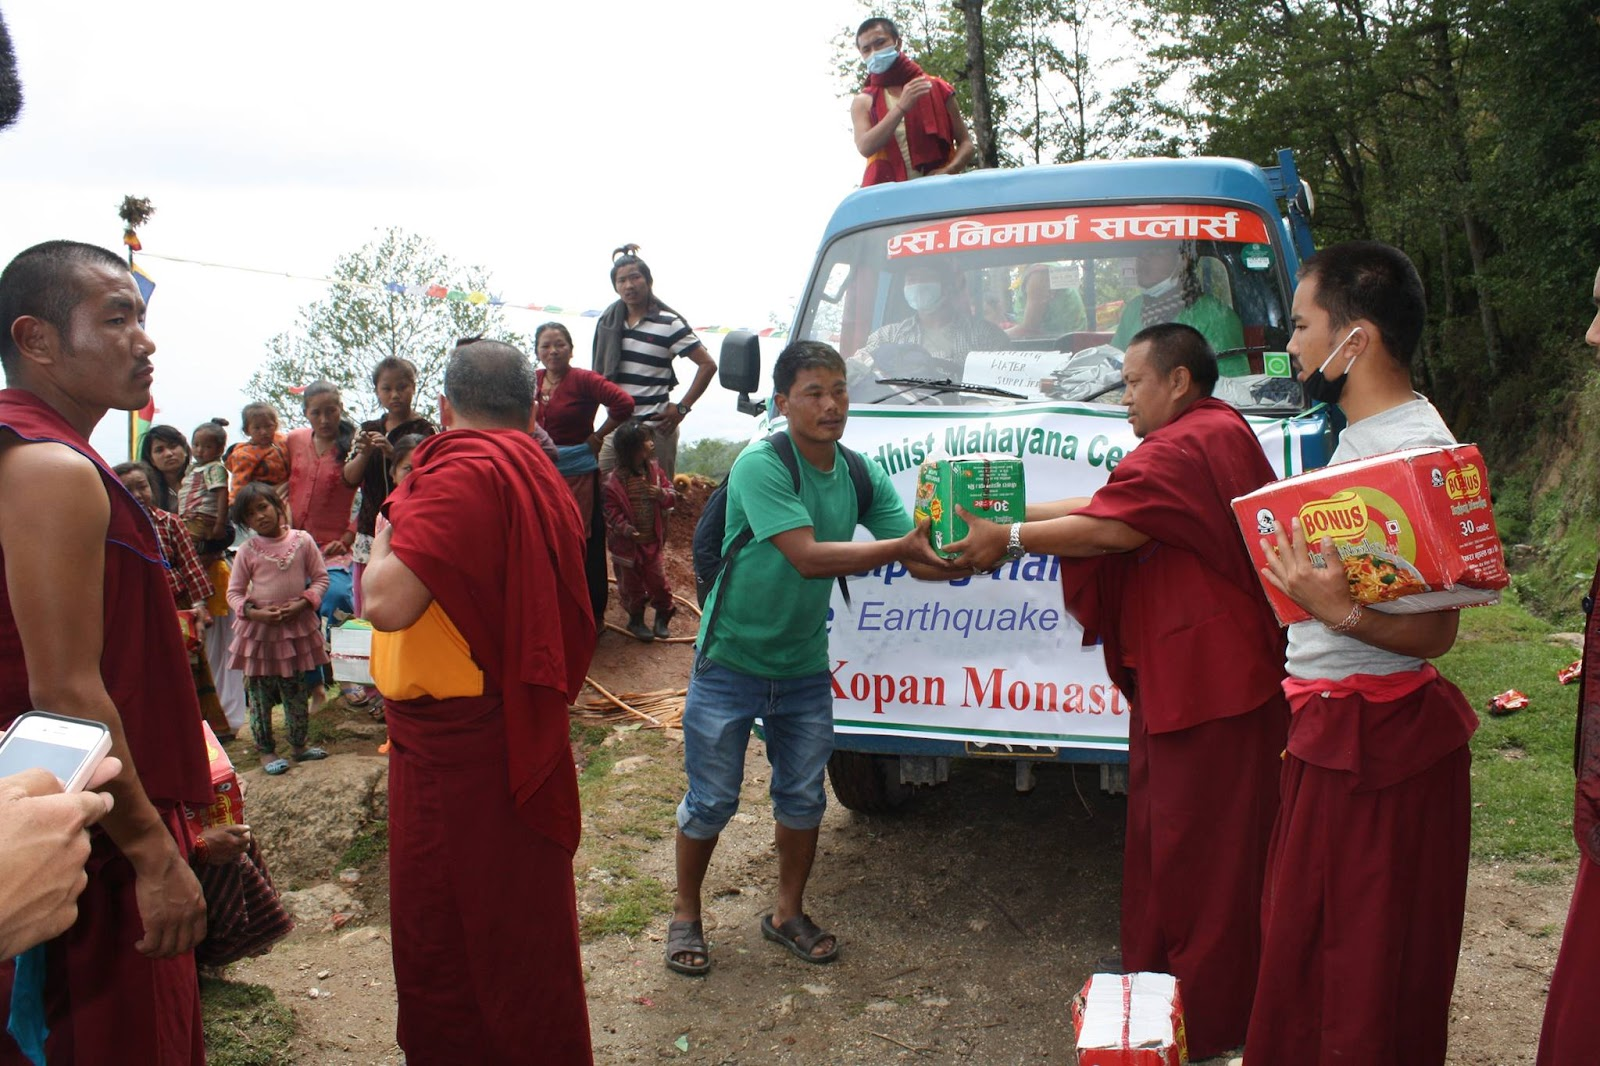 Kopan Helping Hands distributes essential food supplies to villagers in need.